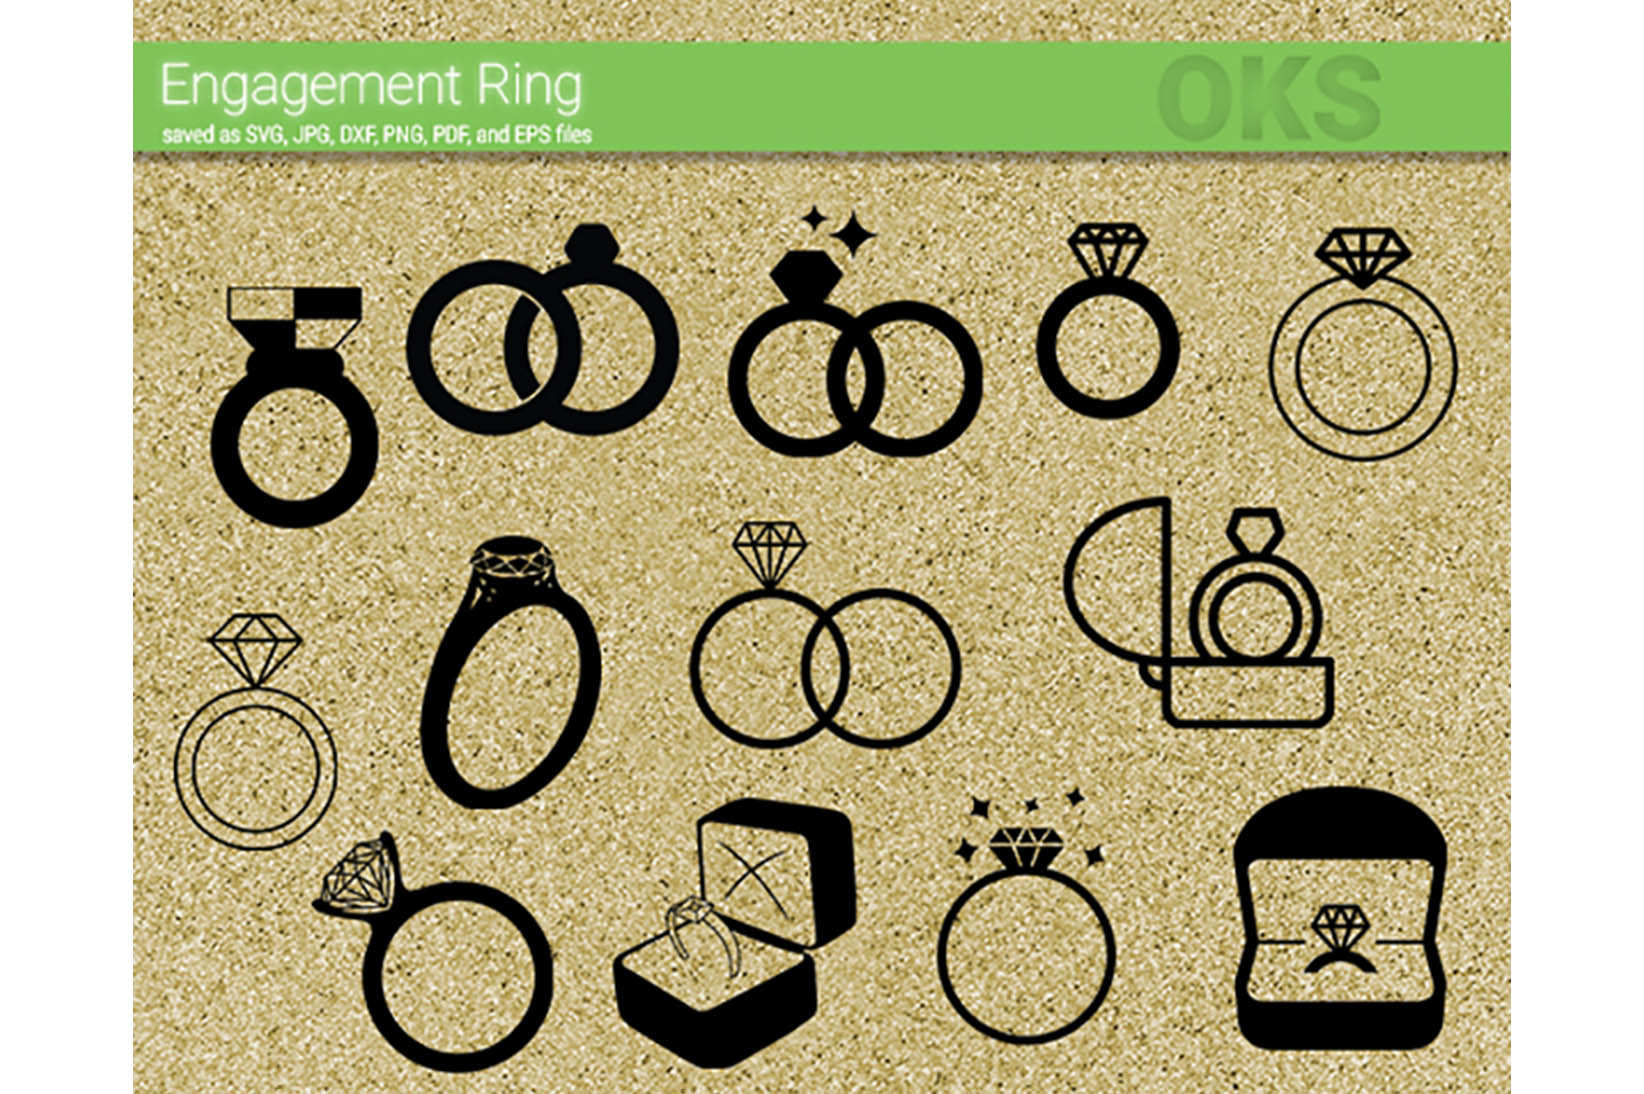 Engagement Ring Svg Vector Graphic By Crafteroks Creative Fabrica